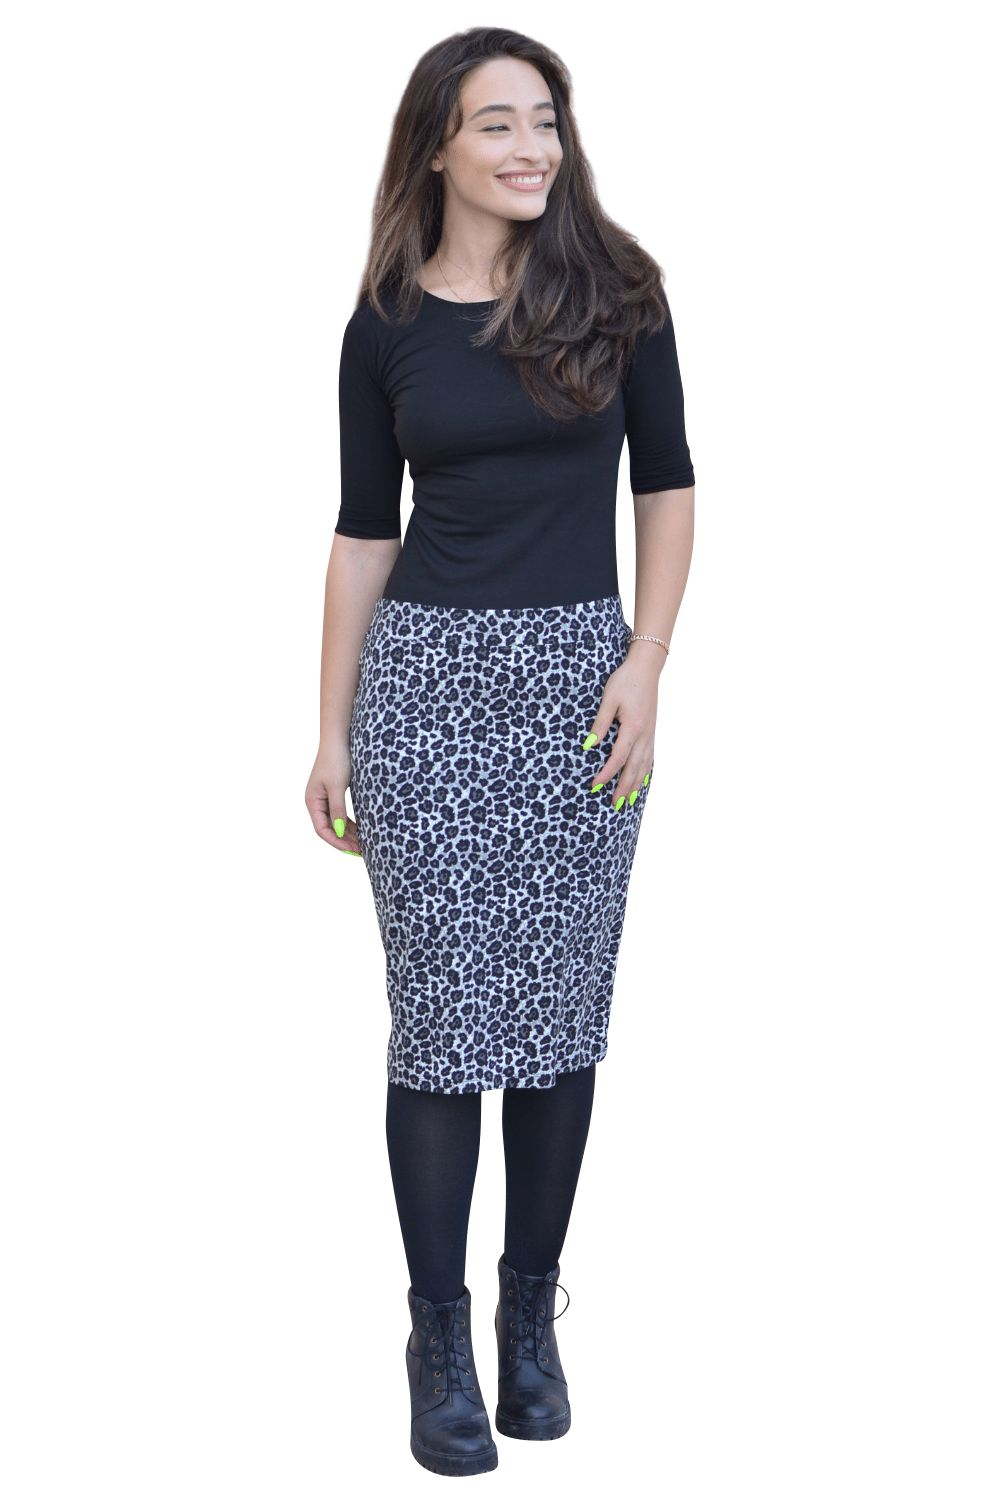 Kosher Casual Womens Modest Knee Length Lightweight Cotton Stretch Twill Pencil Skirt